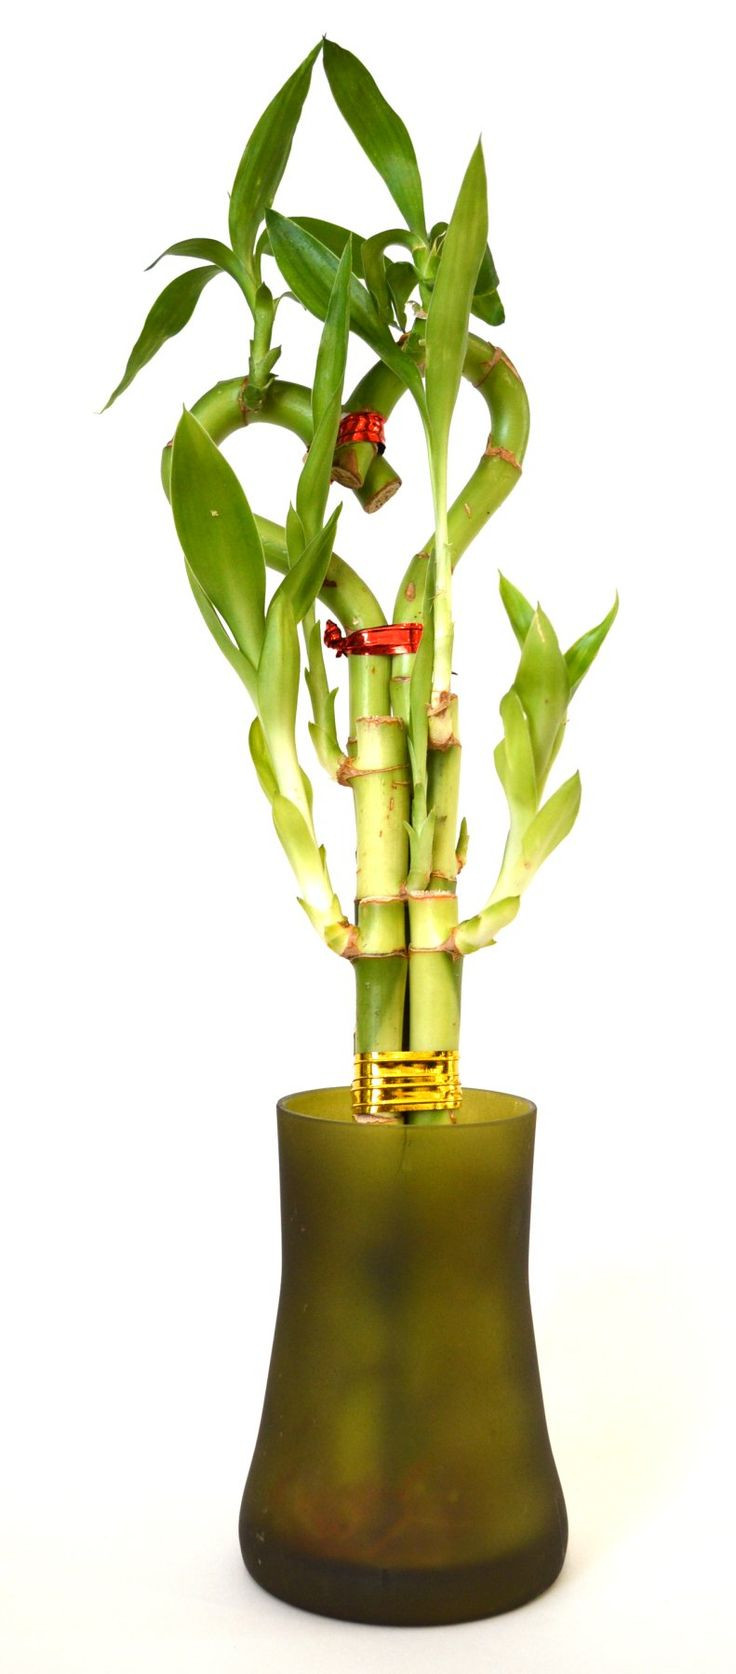 17 Stylish Lucky Bamboo Vase 2021 free download lucky bamboo vase of 414 best products images on pinterest bamboo lucky bamboo and with regard to 9greenbox lucky bamboo heart style with tall glass vase